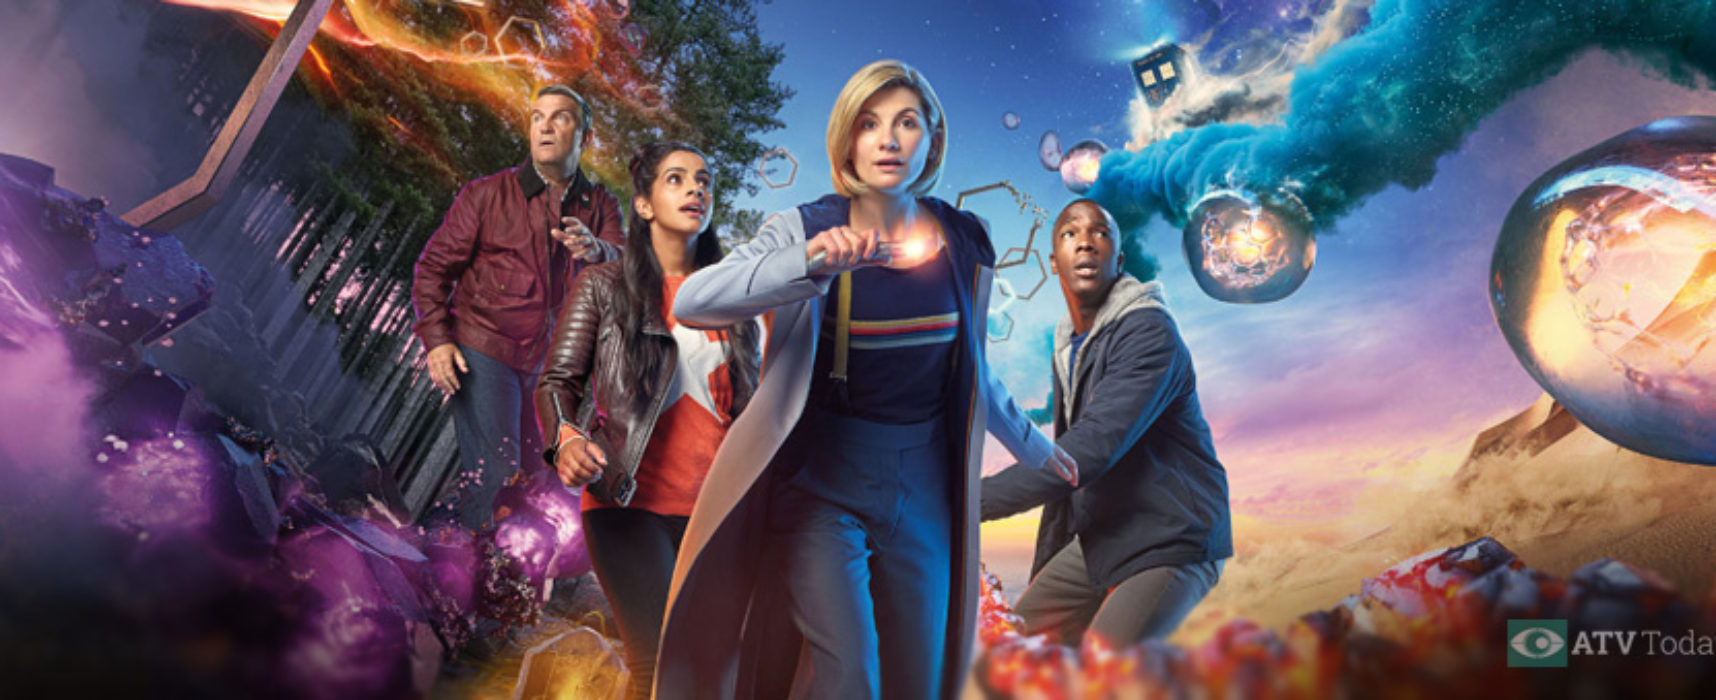 New Doctor Who apparel and jewellery launched